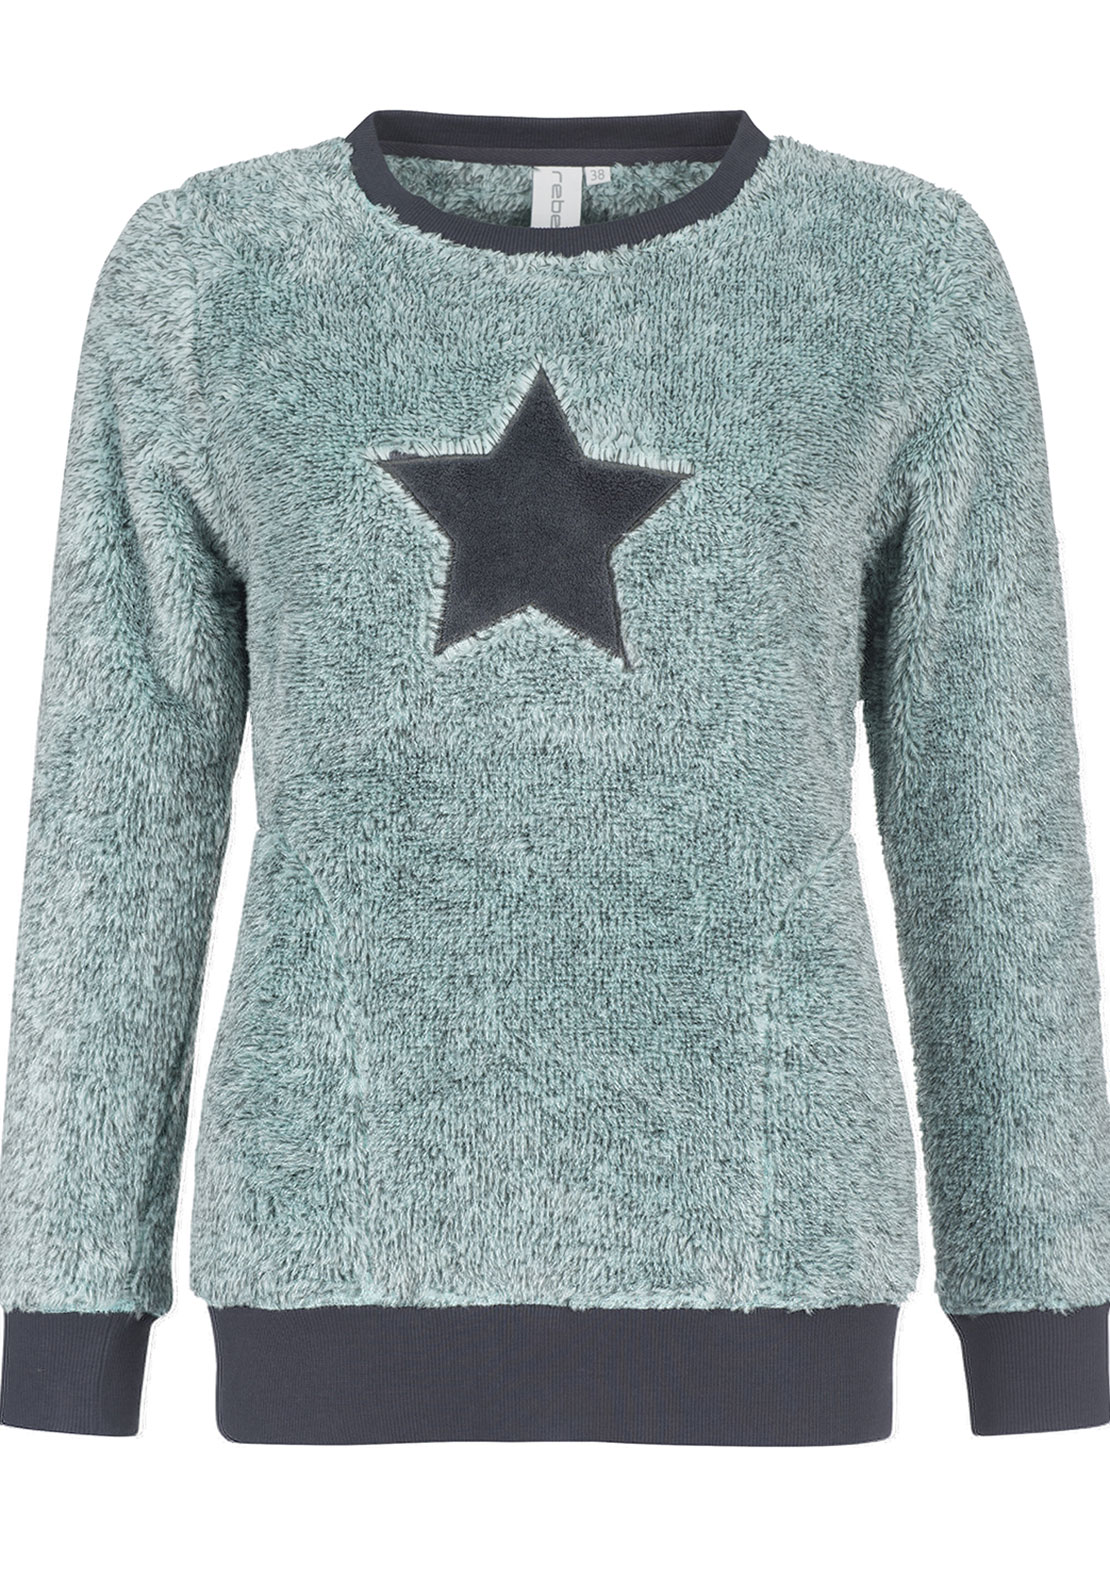 Rebelle Star Print Fleece Pyjama Top, Mint Green